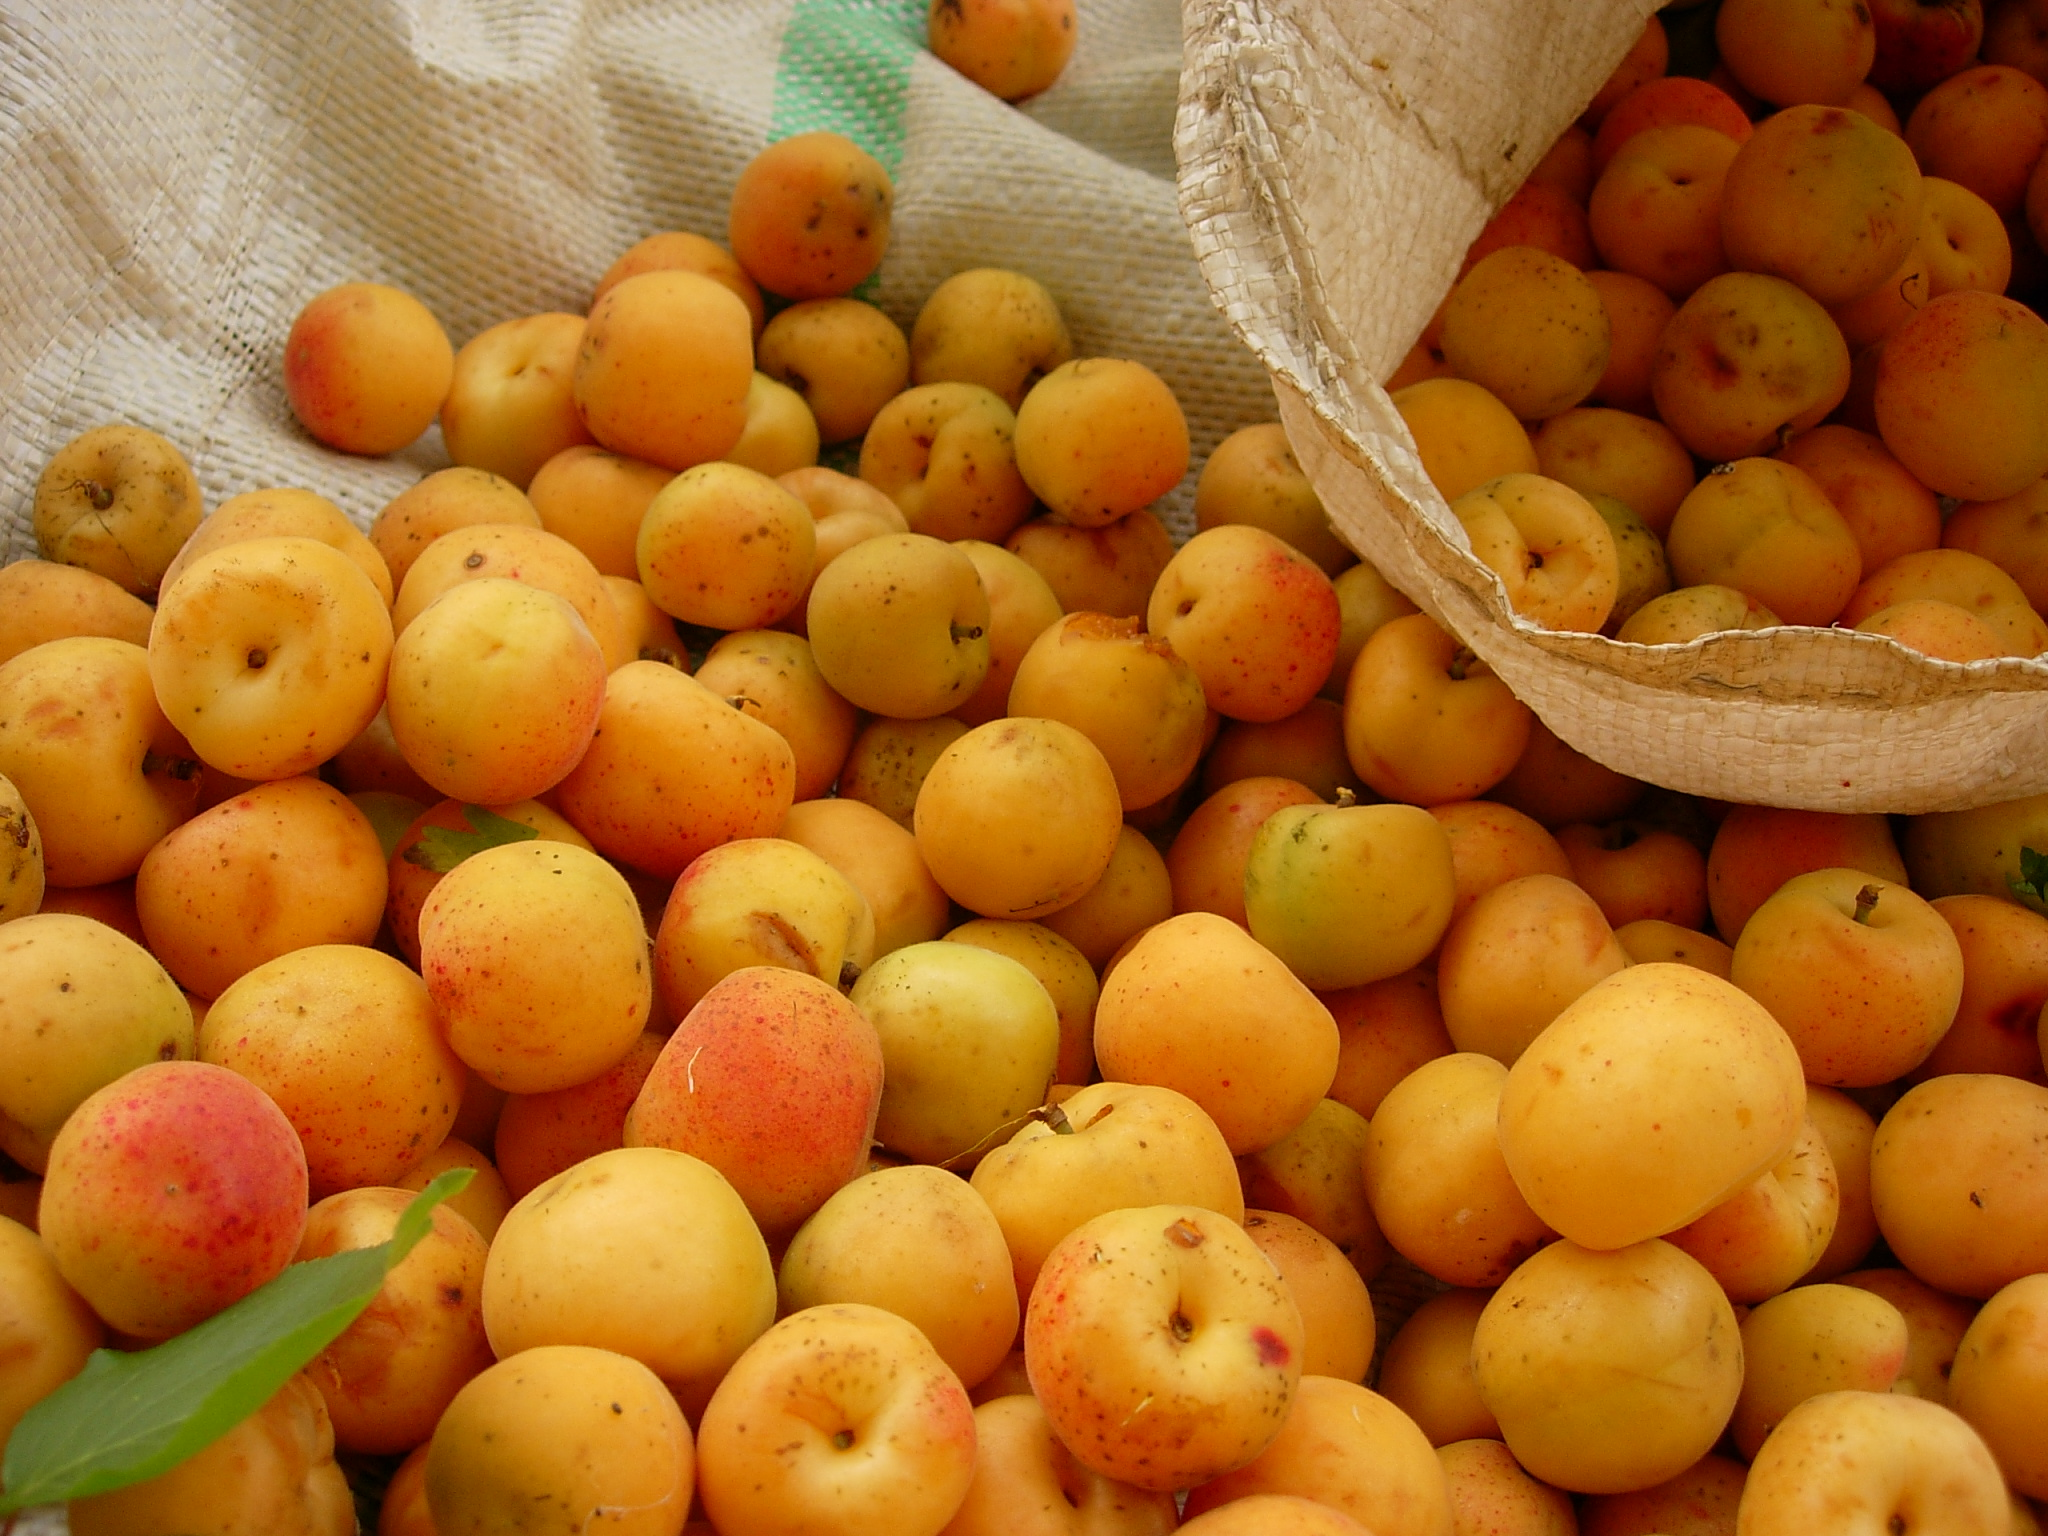 Apricot Nutrition & Health Benefits - Natural Cancer Prevention